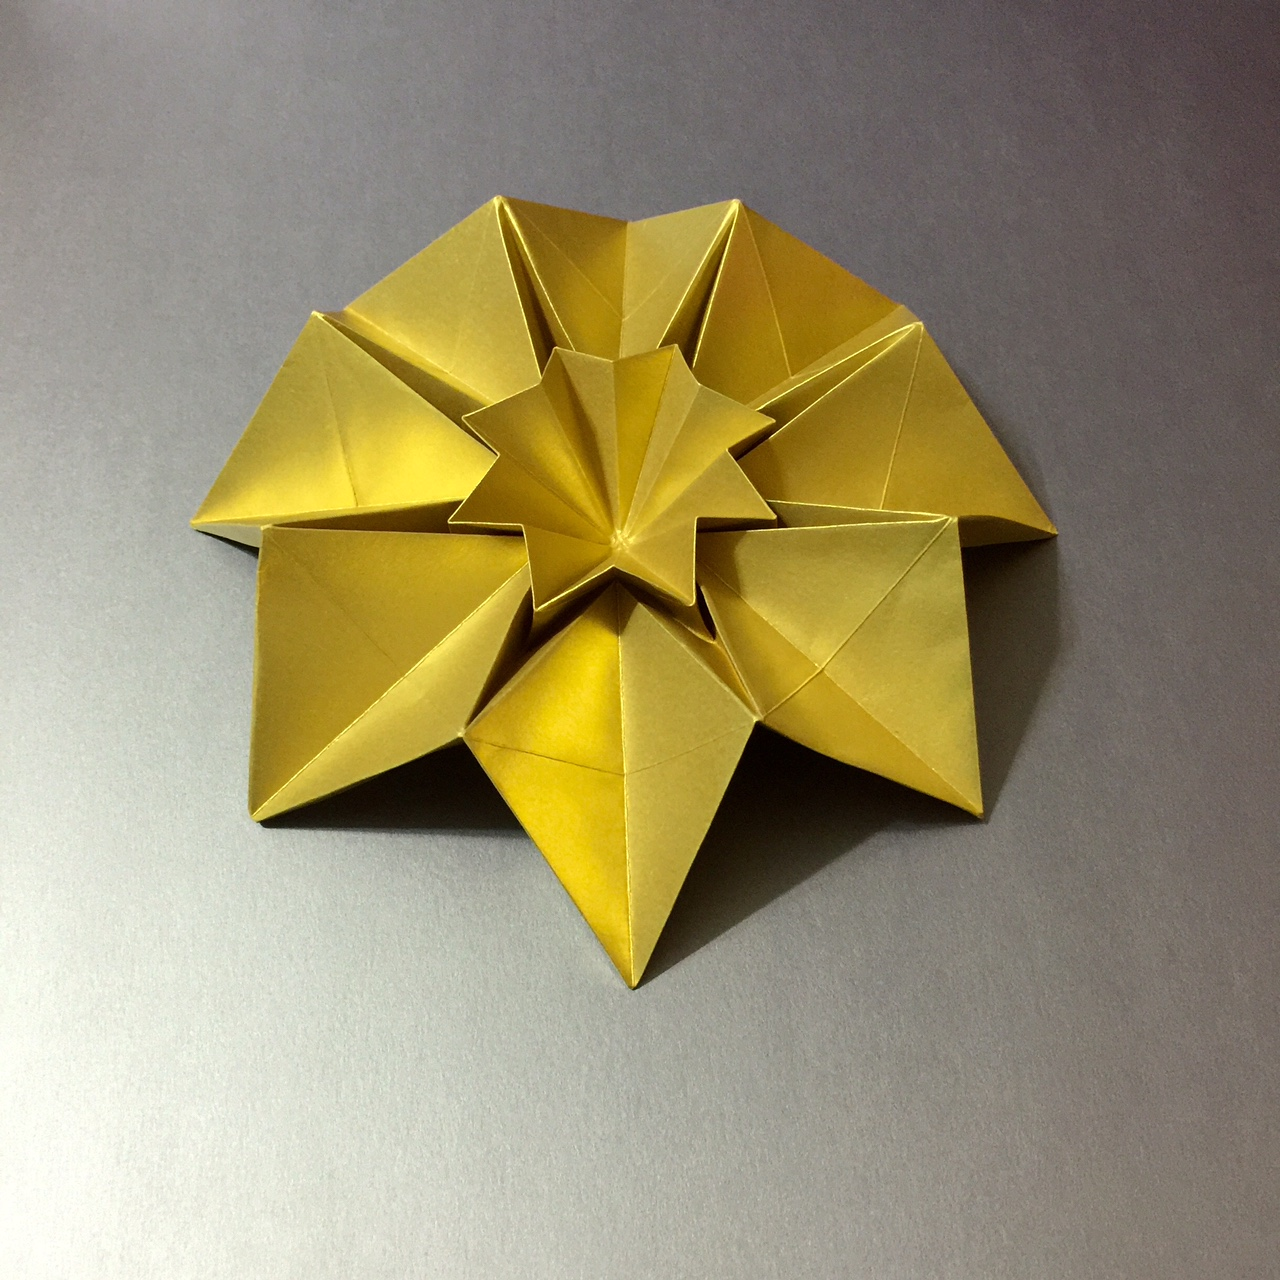 Origami Star Blessilda - photo#49